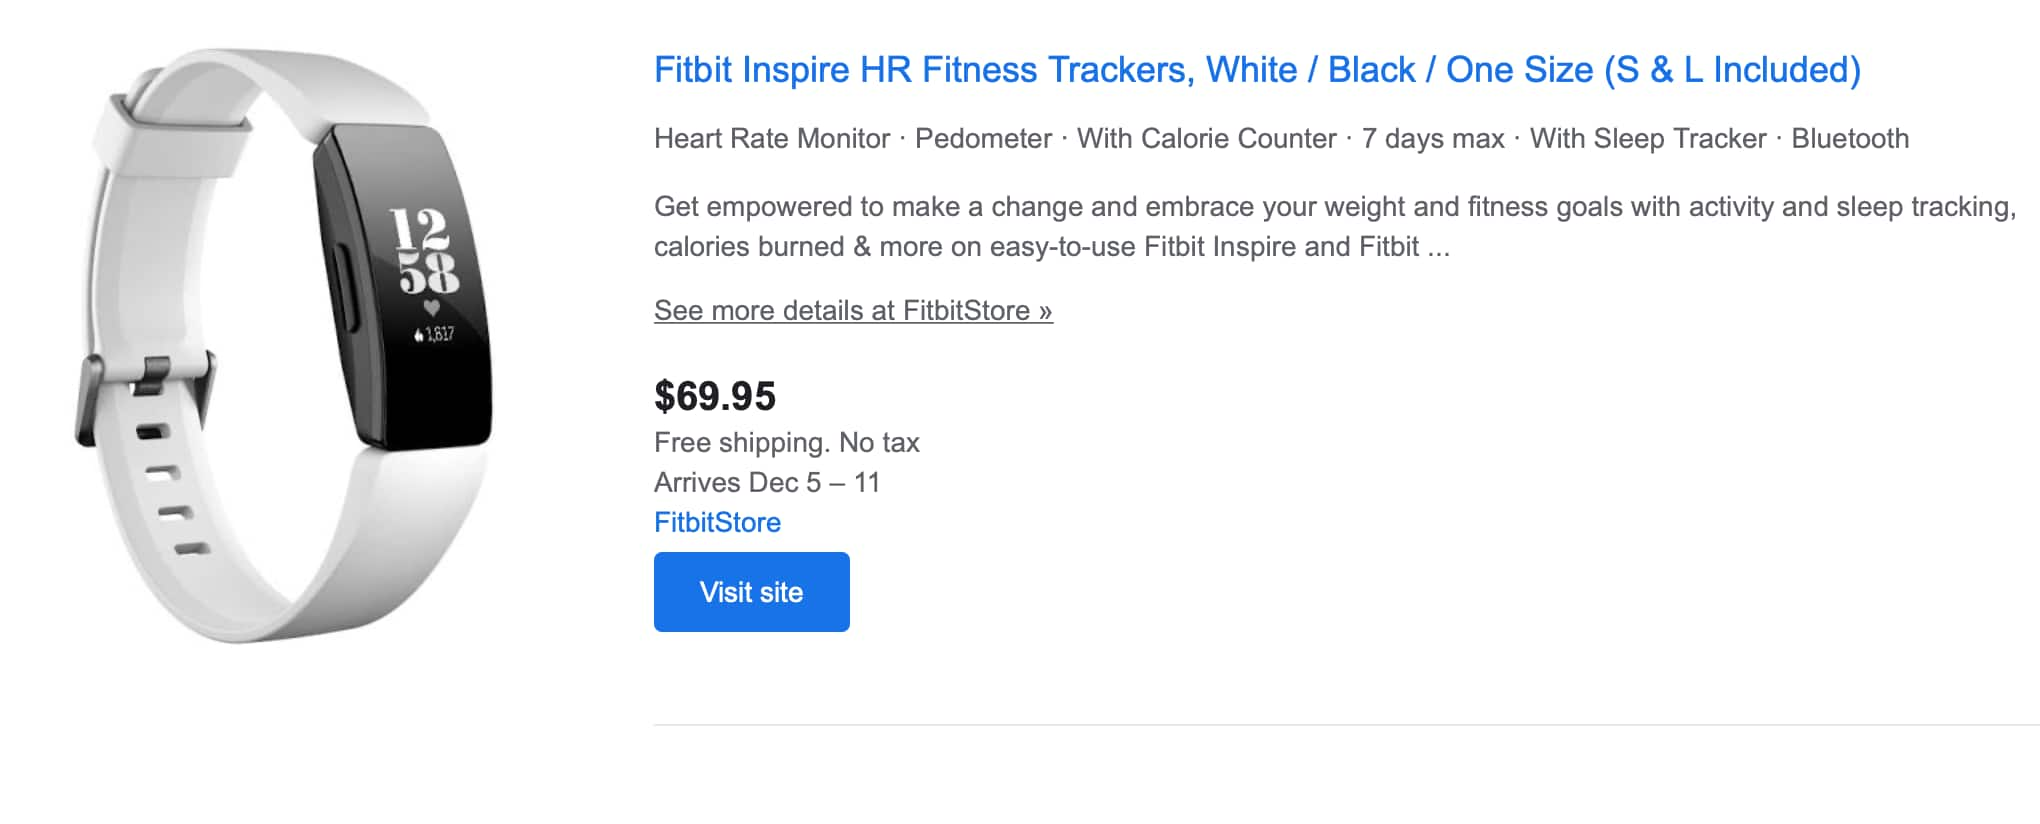 Fitbit inspire HR for 69.99 + free shipping + no tax -- Google shopping [fitbit store] $69.99